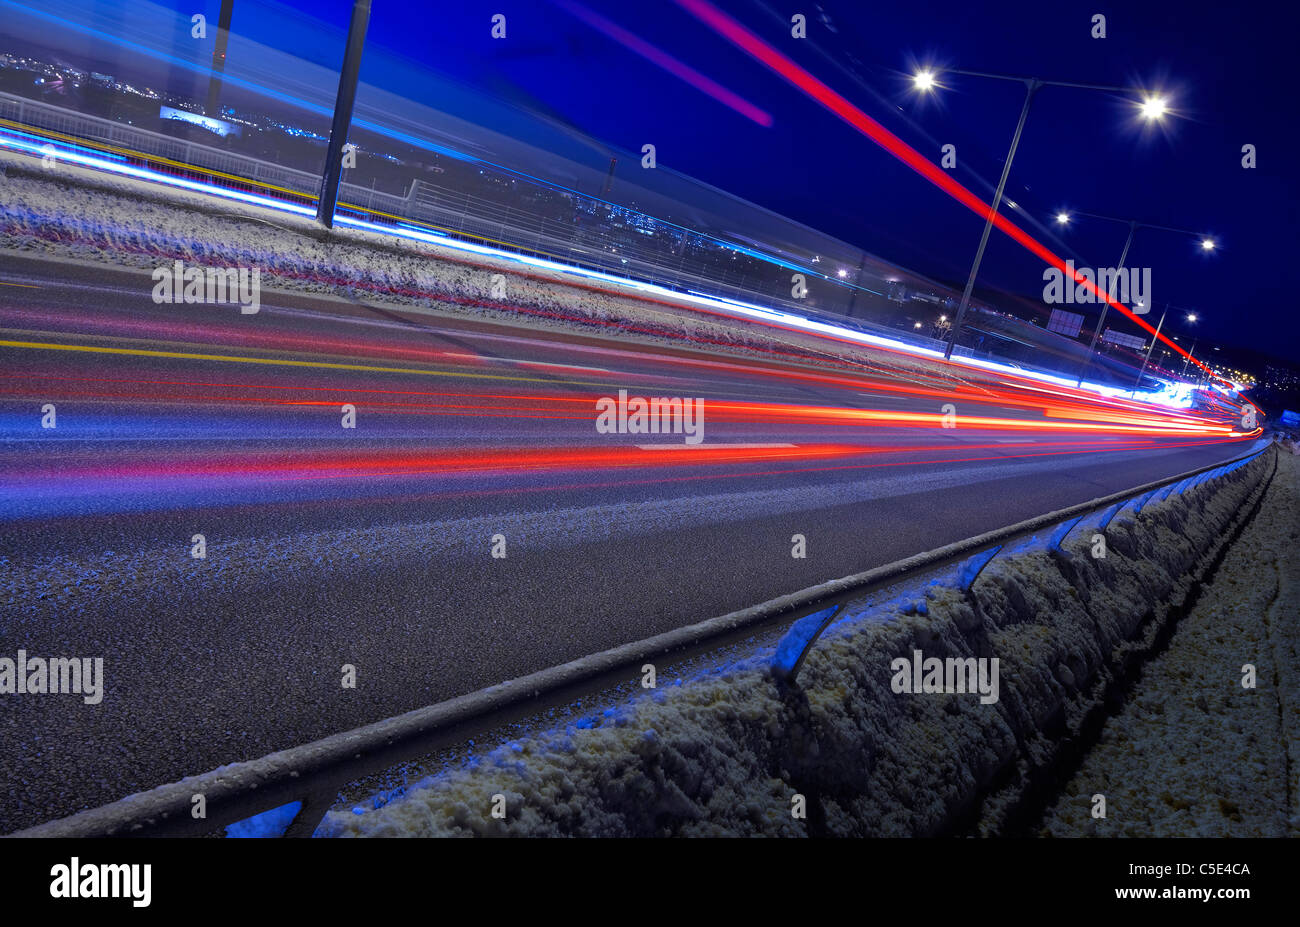 Tilt shot of blurred red light trails on road in winter at night - Stock Image